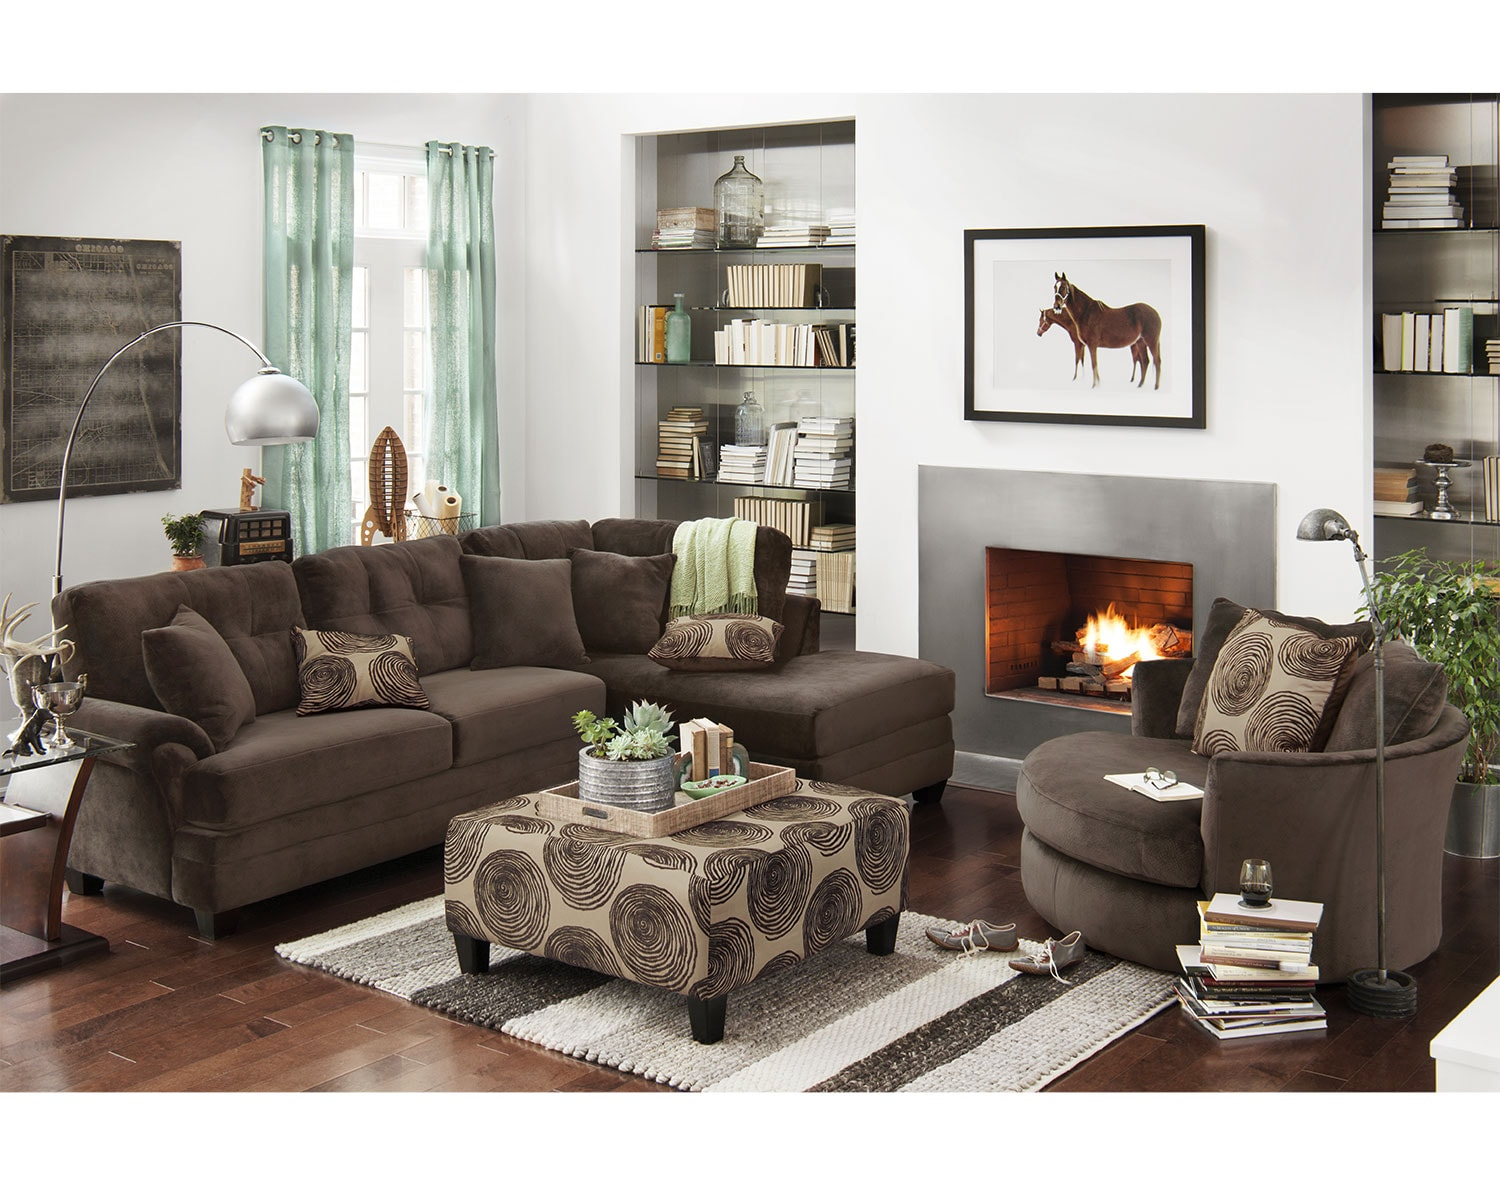 The Cordelle Sectional Collection - Chocolate